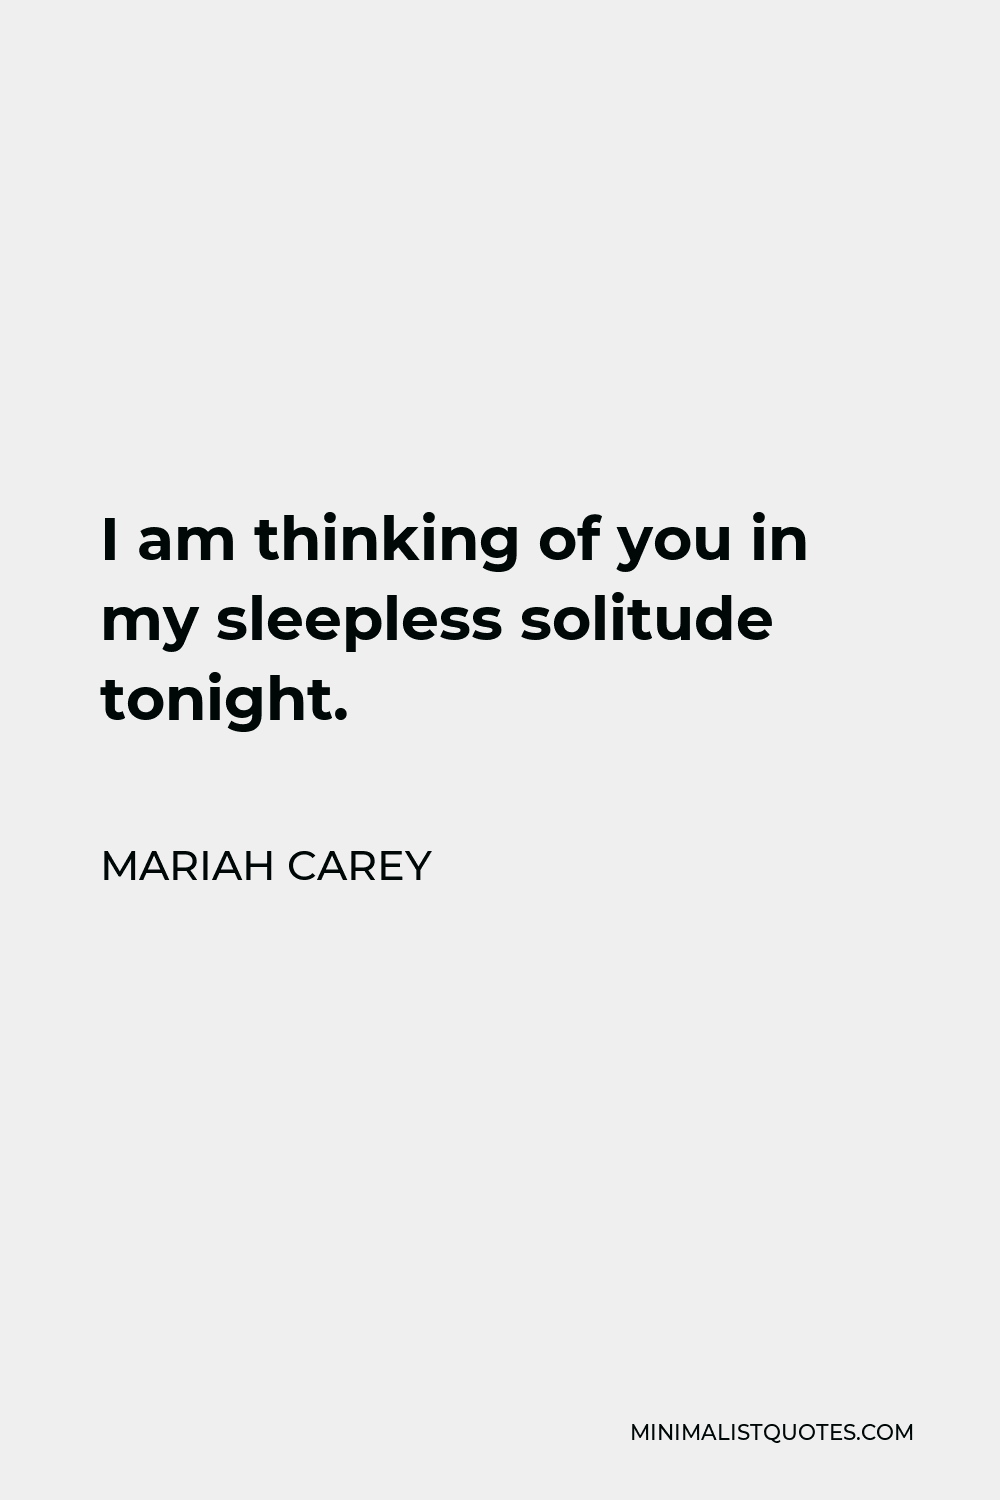 Mariah Carey Quote - I am thinking of you in my sleepless solitude tonight.